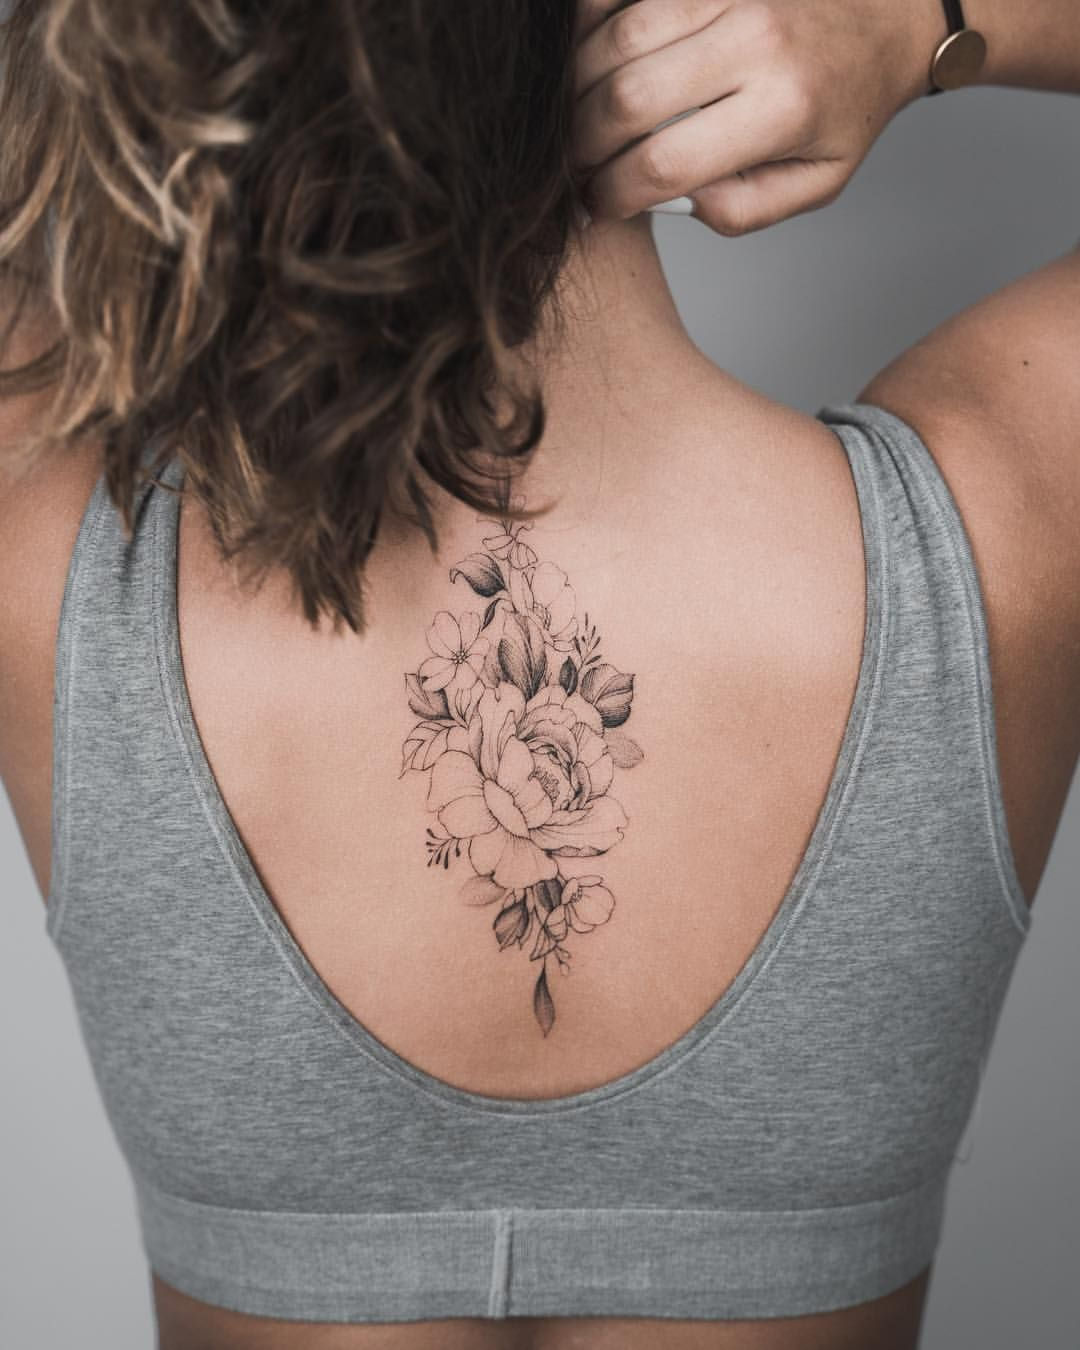 Simple And Sweet Tattoos Floral Back Tattoos Body Art Tattoos